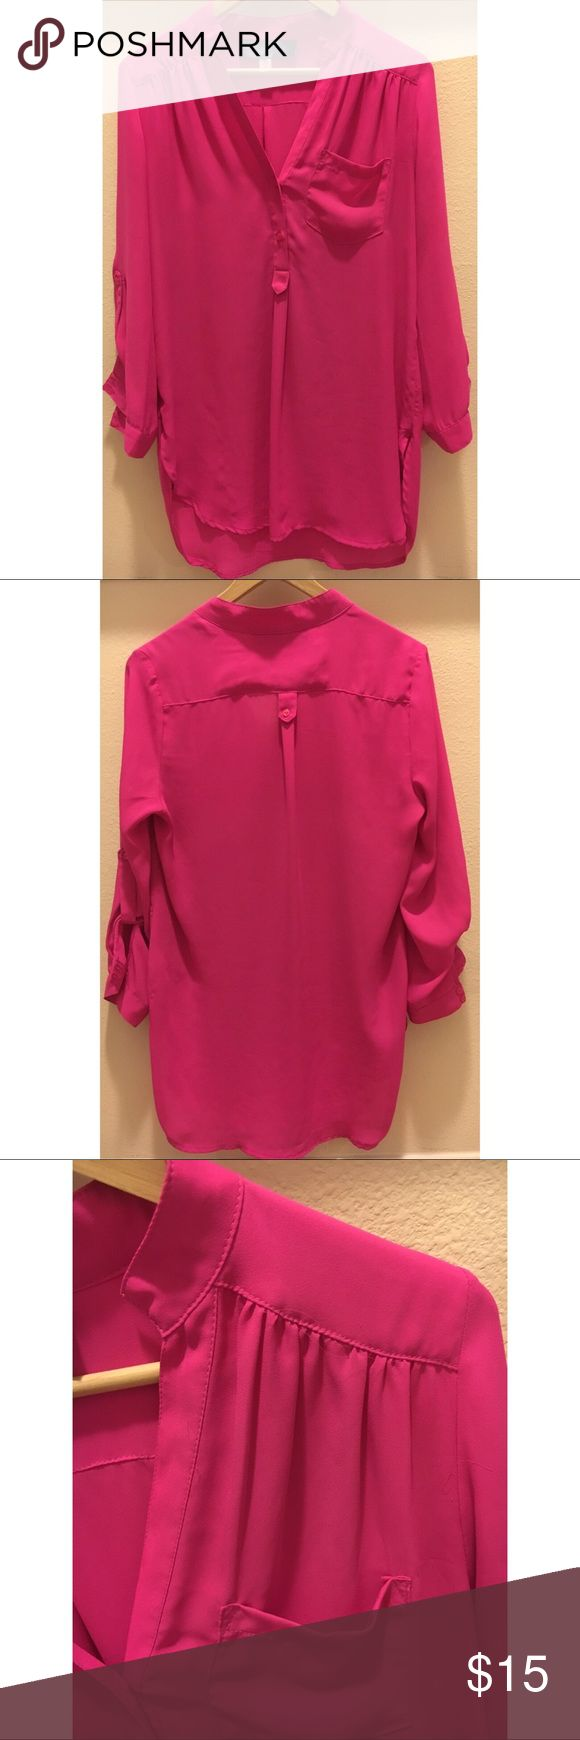 Langford market Blouse In hot pink size medium Hot pink blouse by Langford Market. Size medium. 3/4 length sleeves. Button at cuffs with option to roll up. Pocket Detail in front. 100% polyester. Hits below hip. Pre owned excellent condition. langford market Tops Blouses